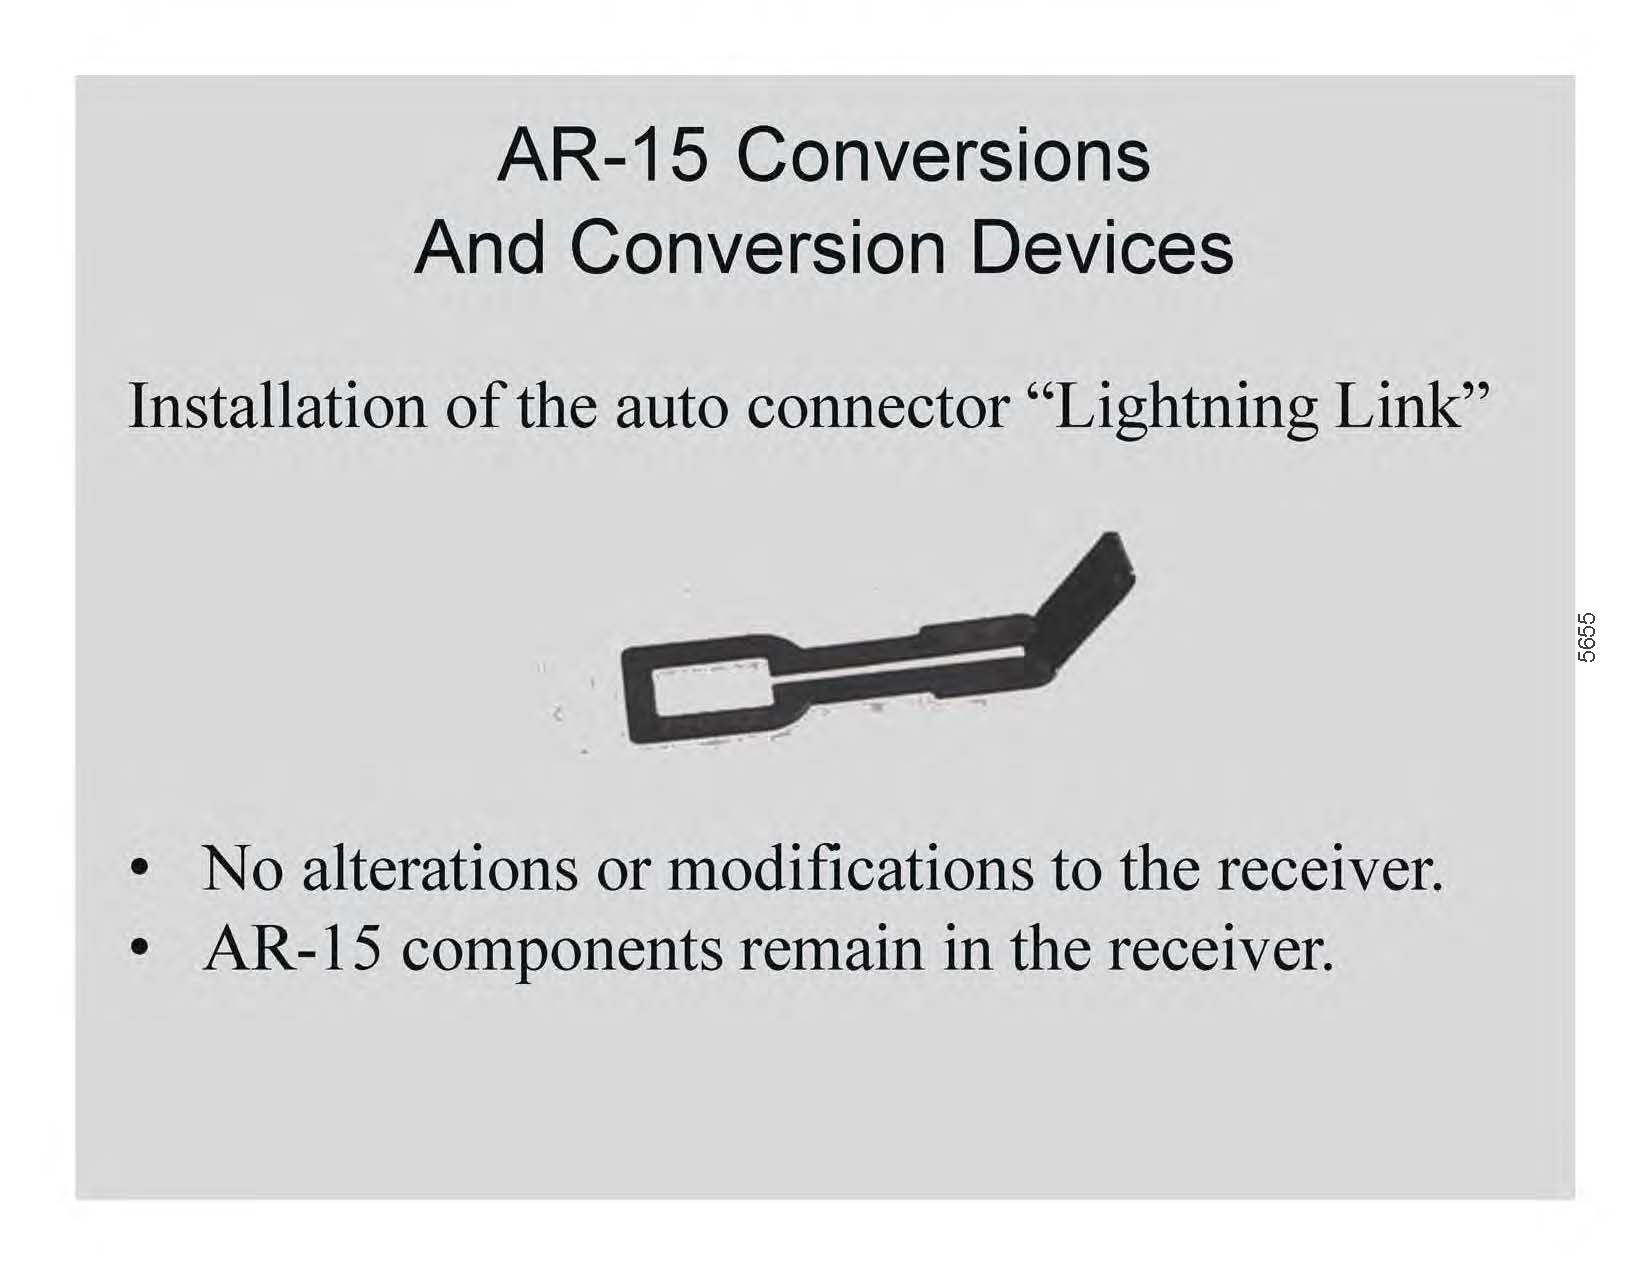 Prove LL's illegal without citing 26 USC 5845(b) - AR15 COM